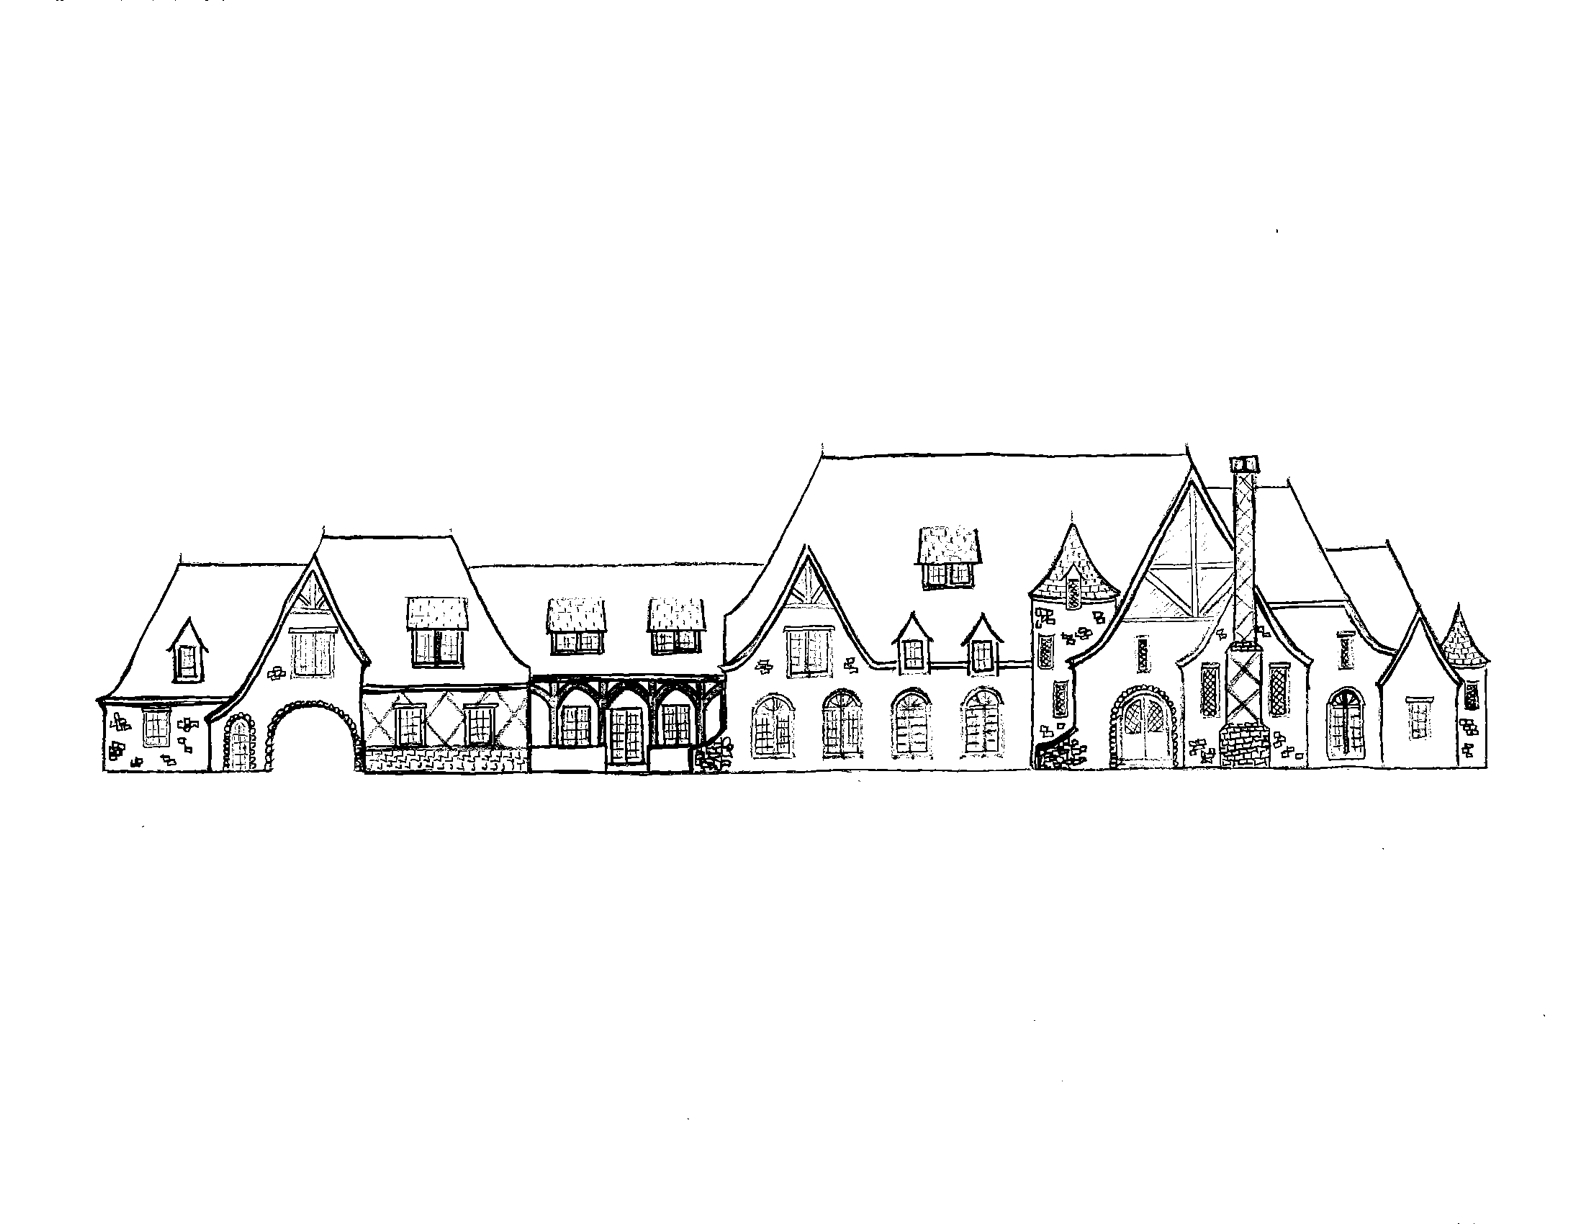 Two More Mansion Drawings done by a Homes of the Rich reader